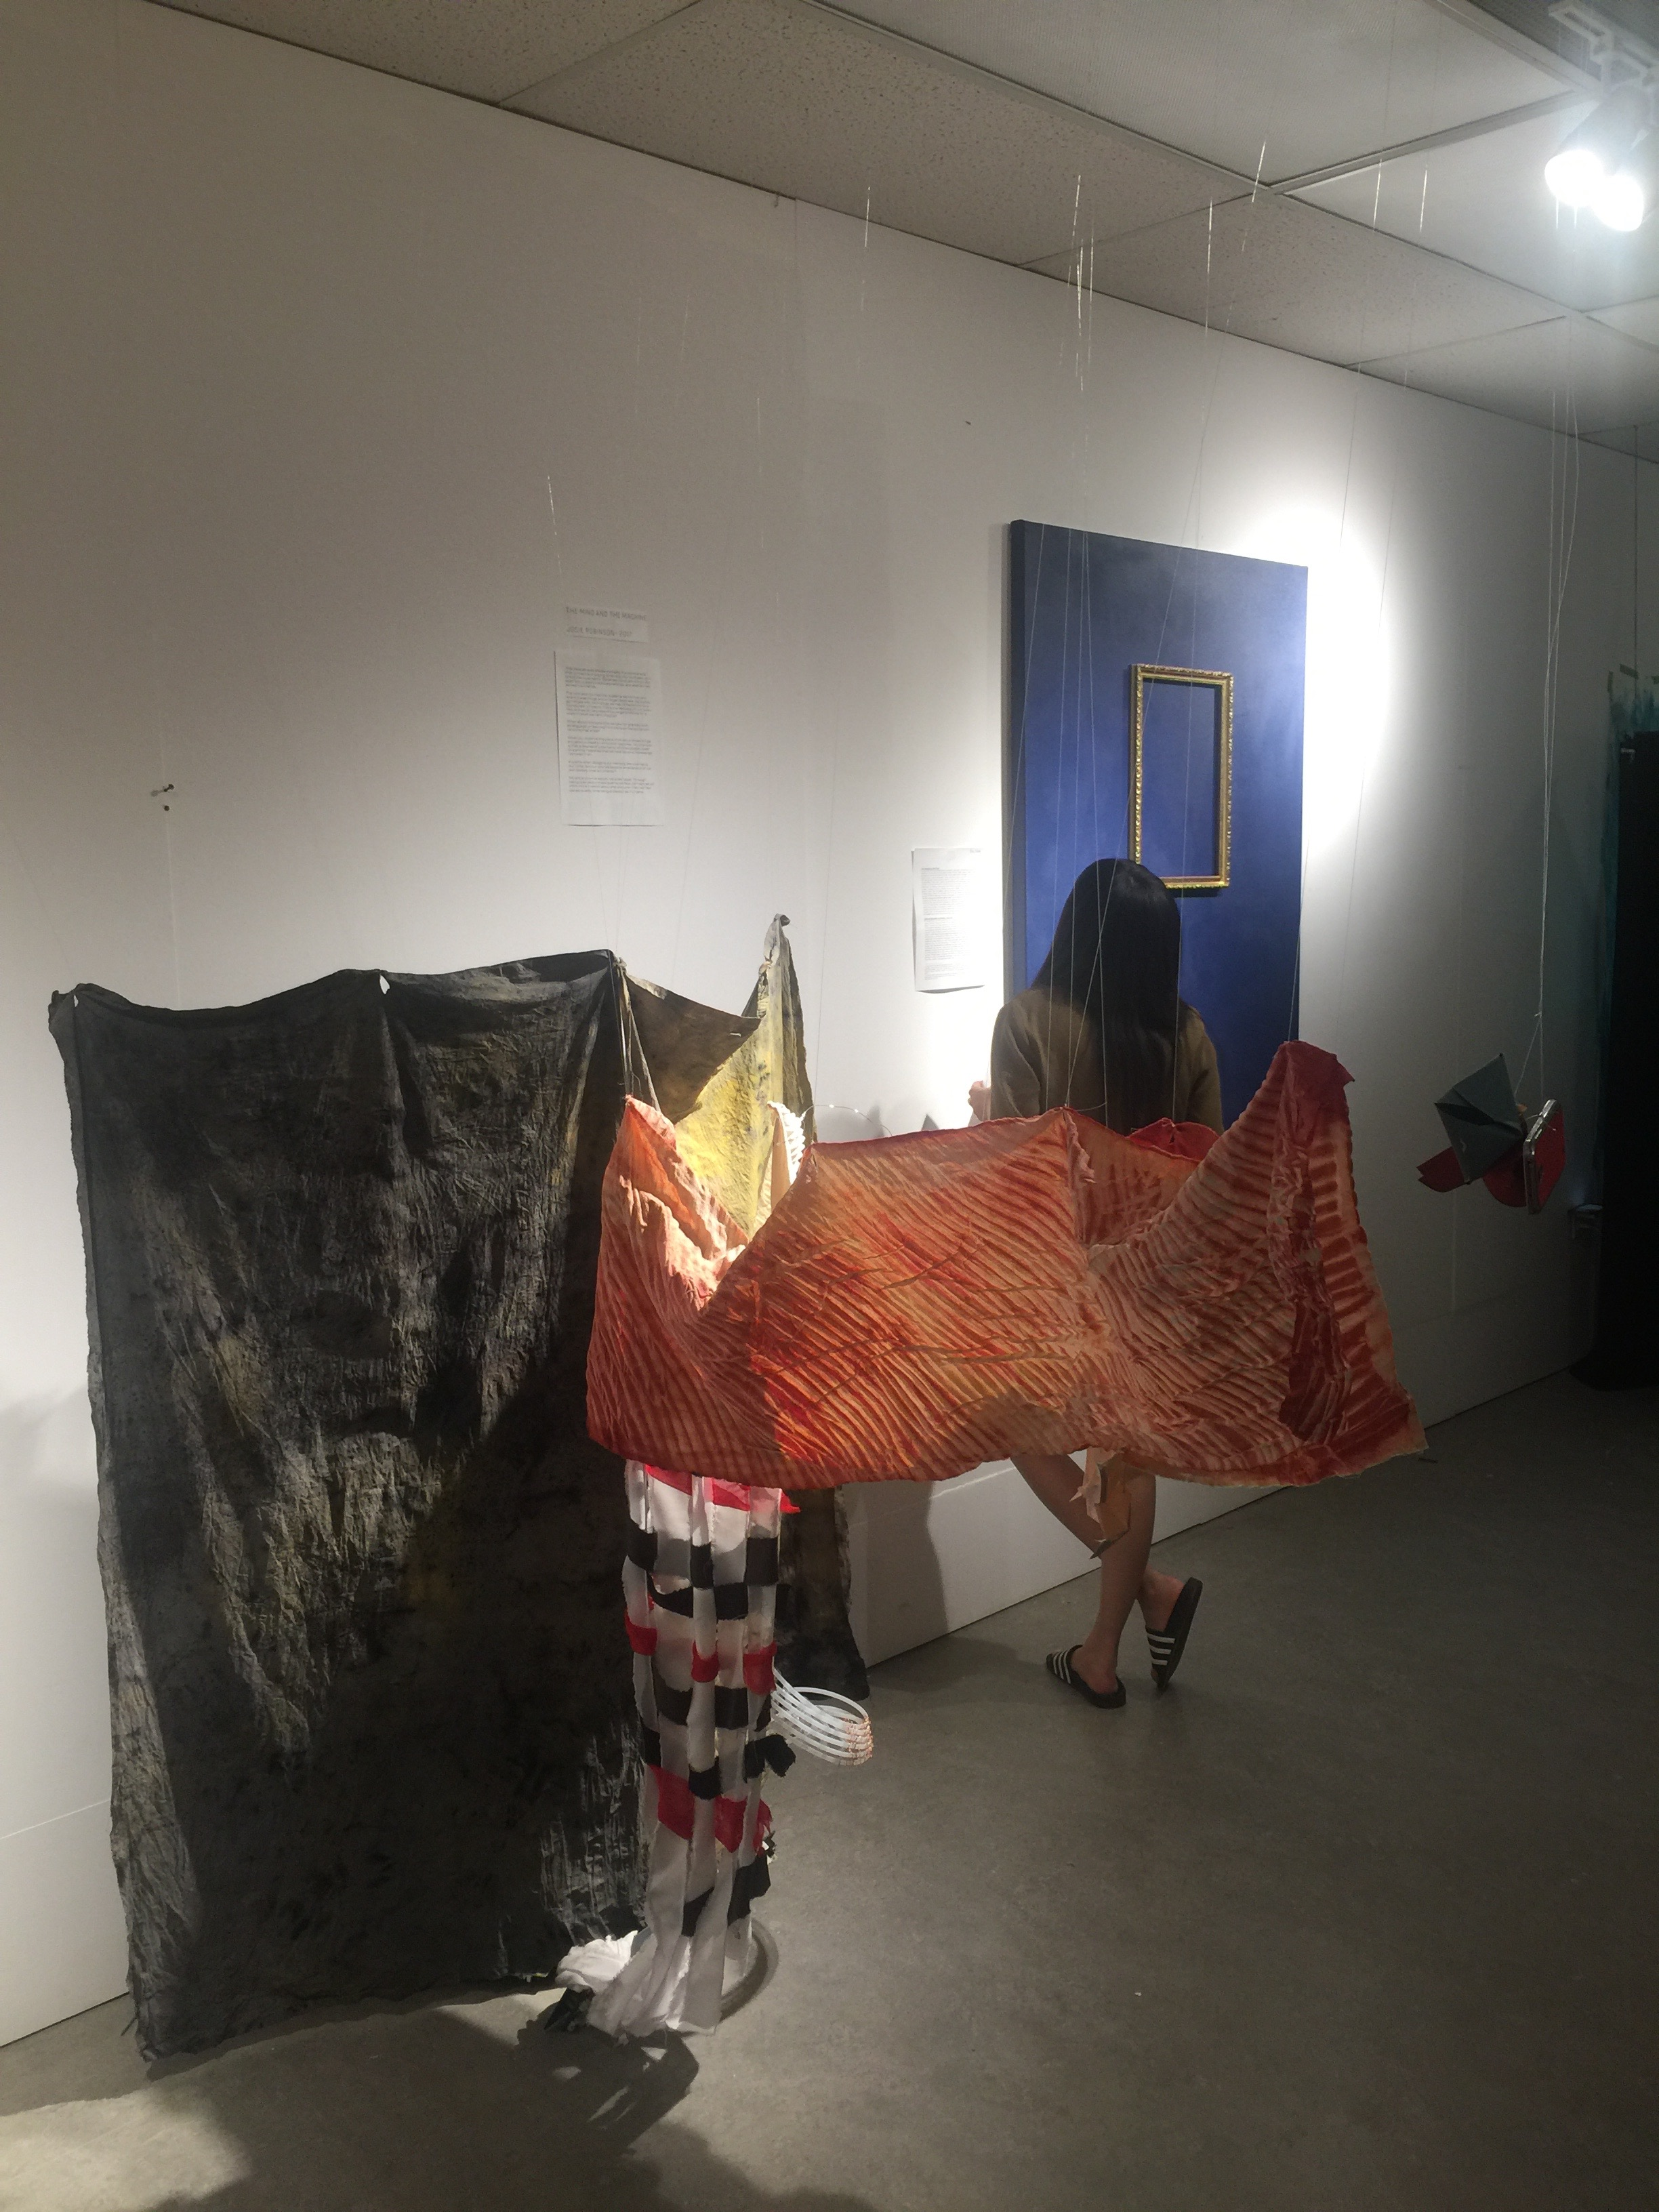 Josie's project (in foreground) featured an installation with fabrics that she dyed herself to reimagine the colour palette of the Cassatt painting.